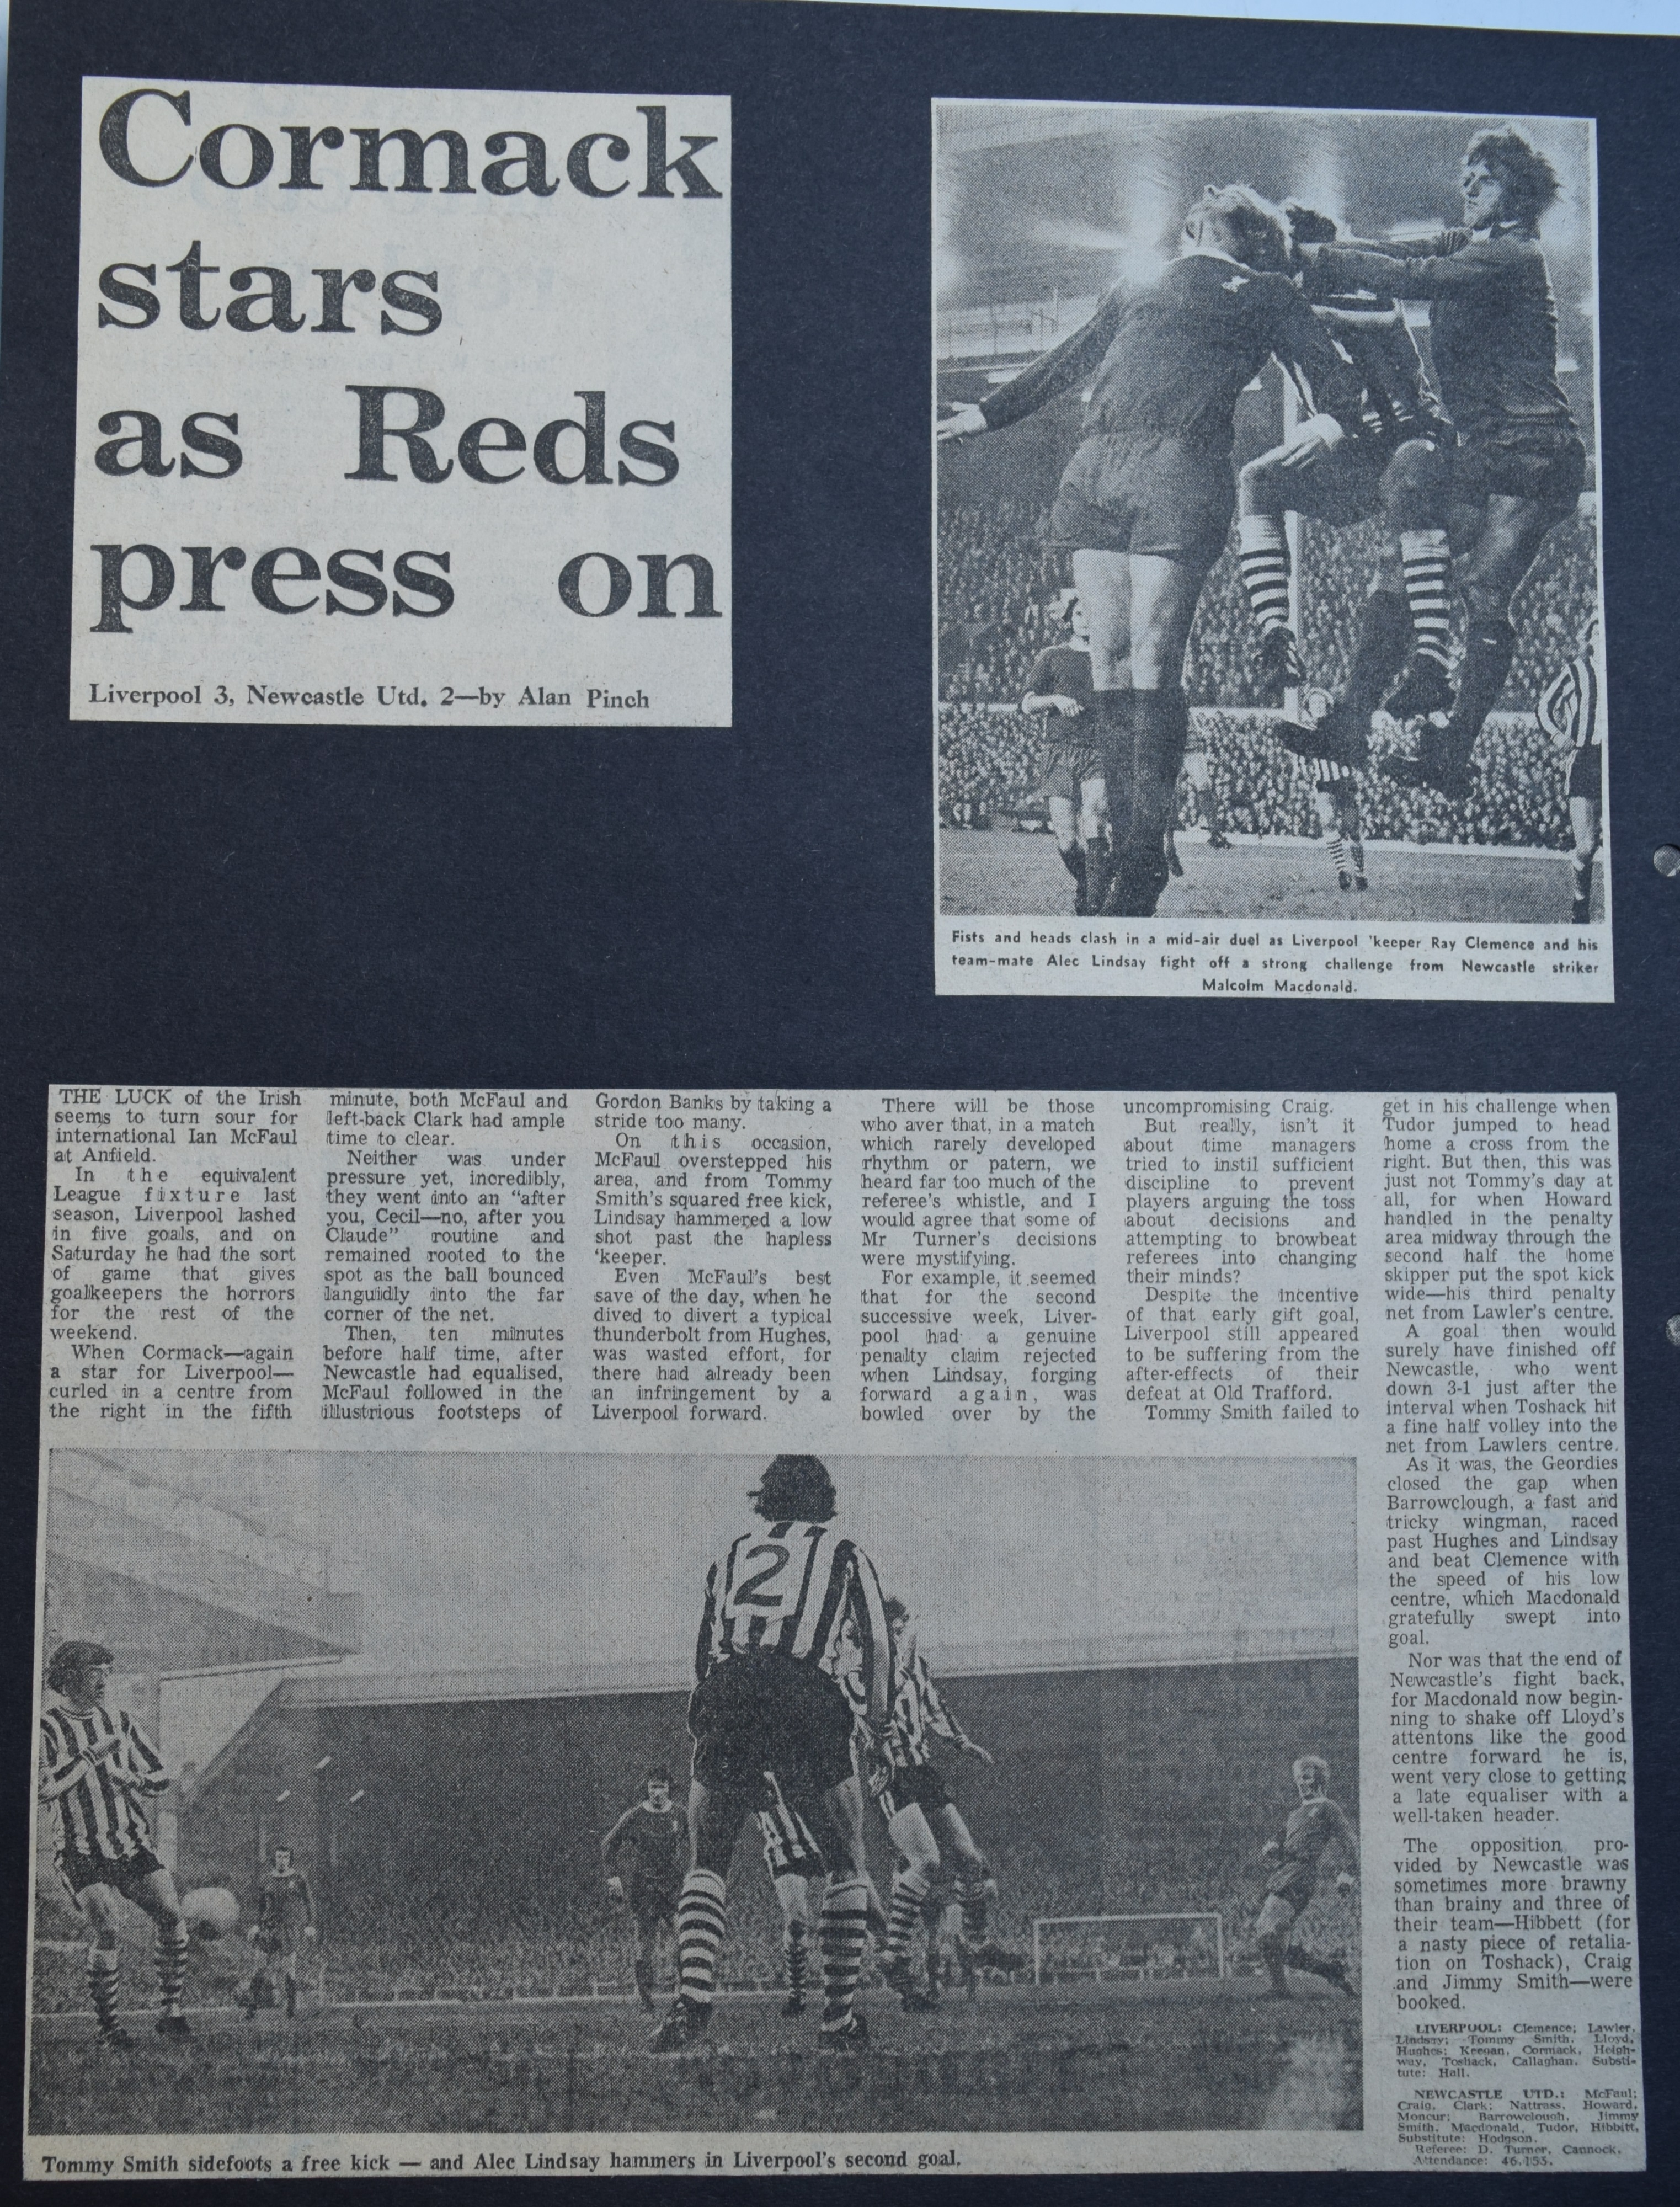 Cormack stars as Reds press on - 18 November 1972